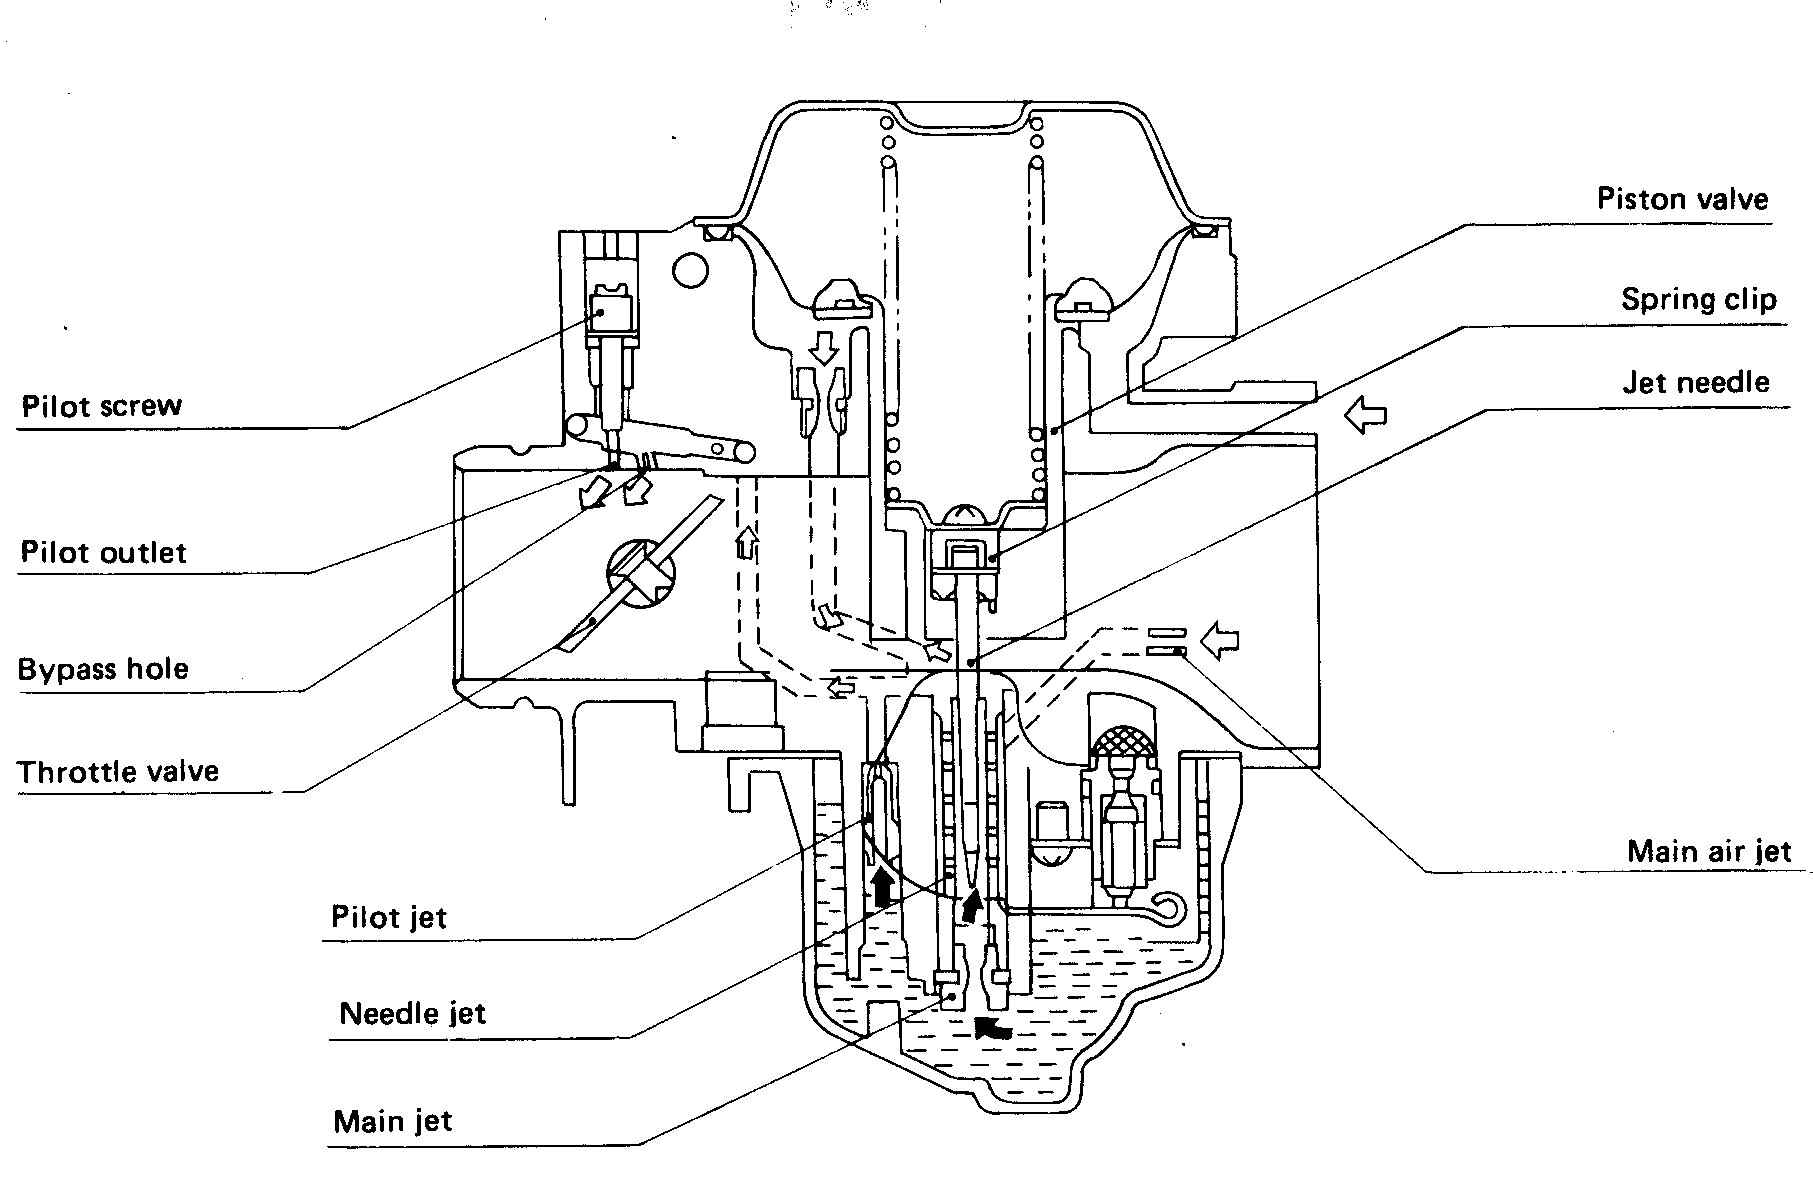 carburetor schematic diagram